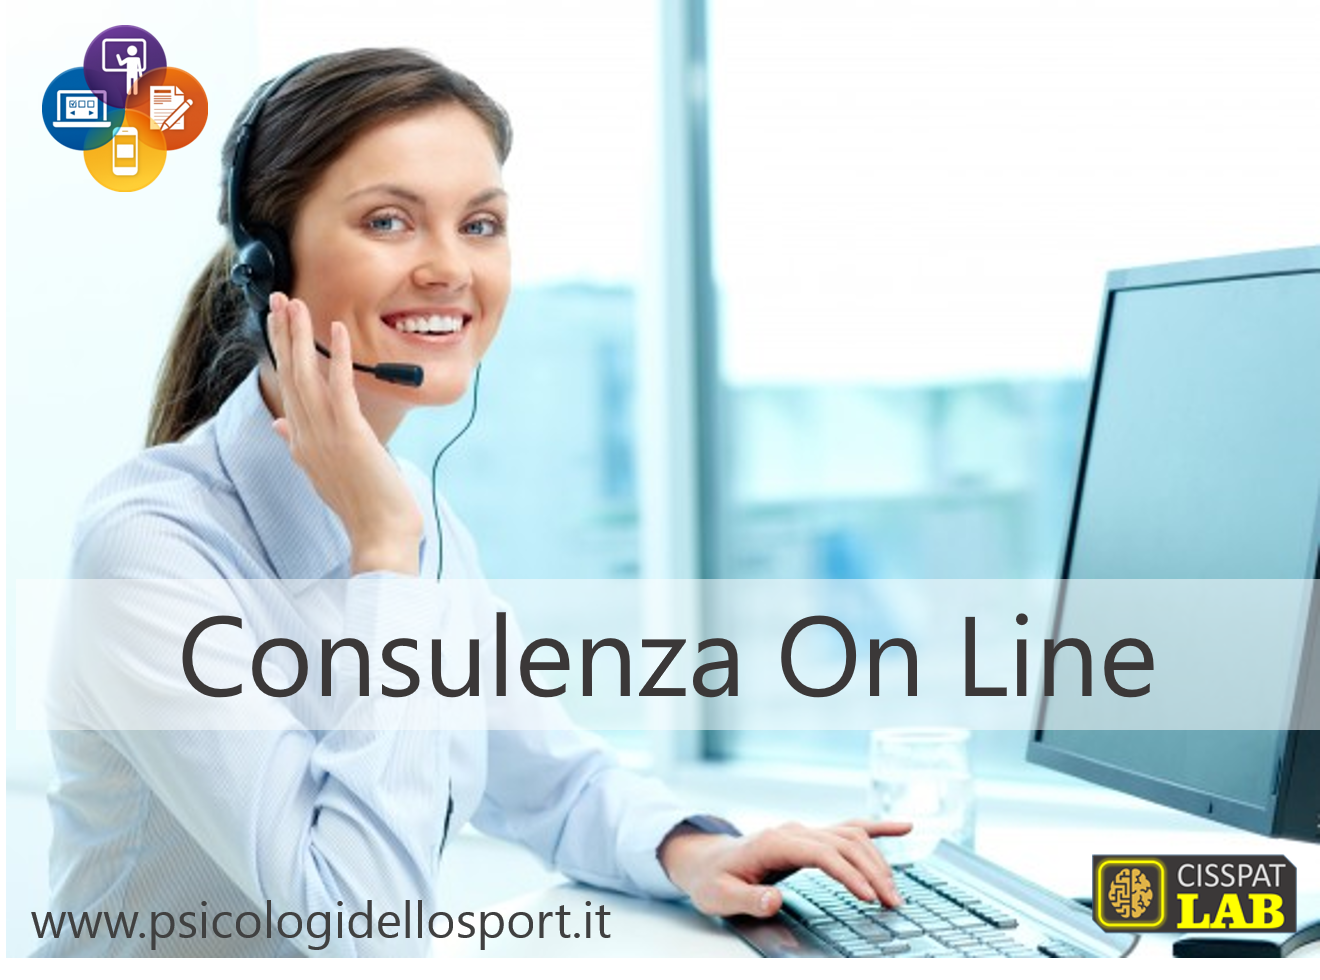 Consulenza on line psicologi dello sport for Consulenza arredamento on line